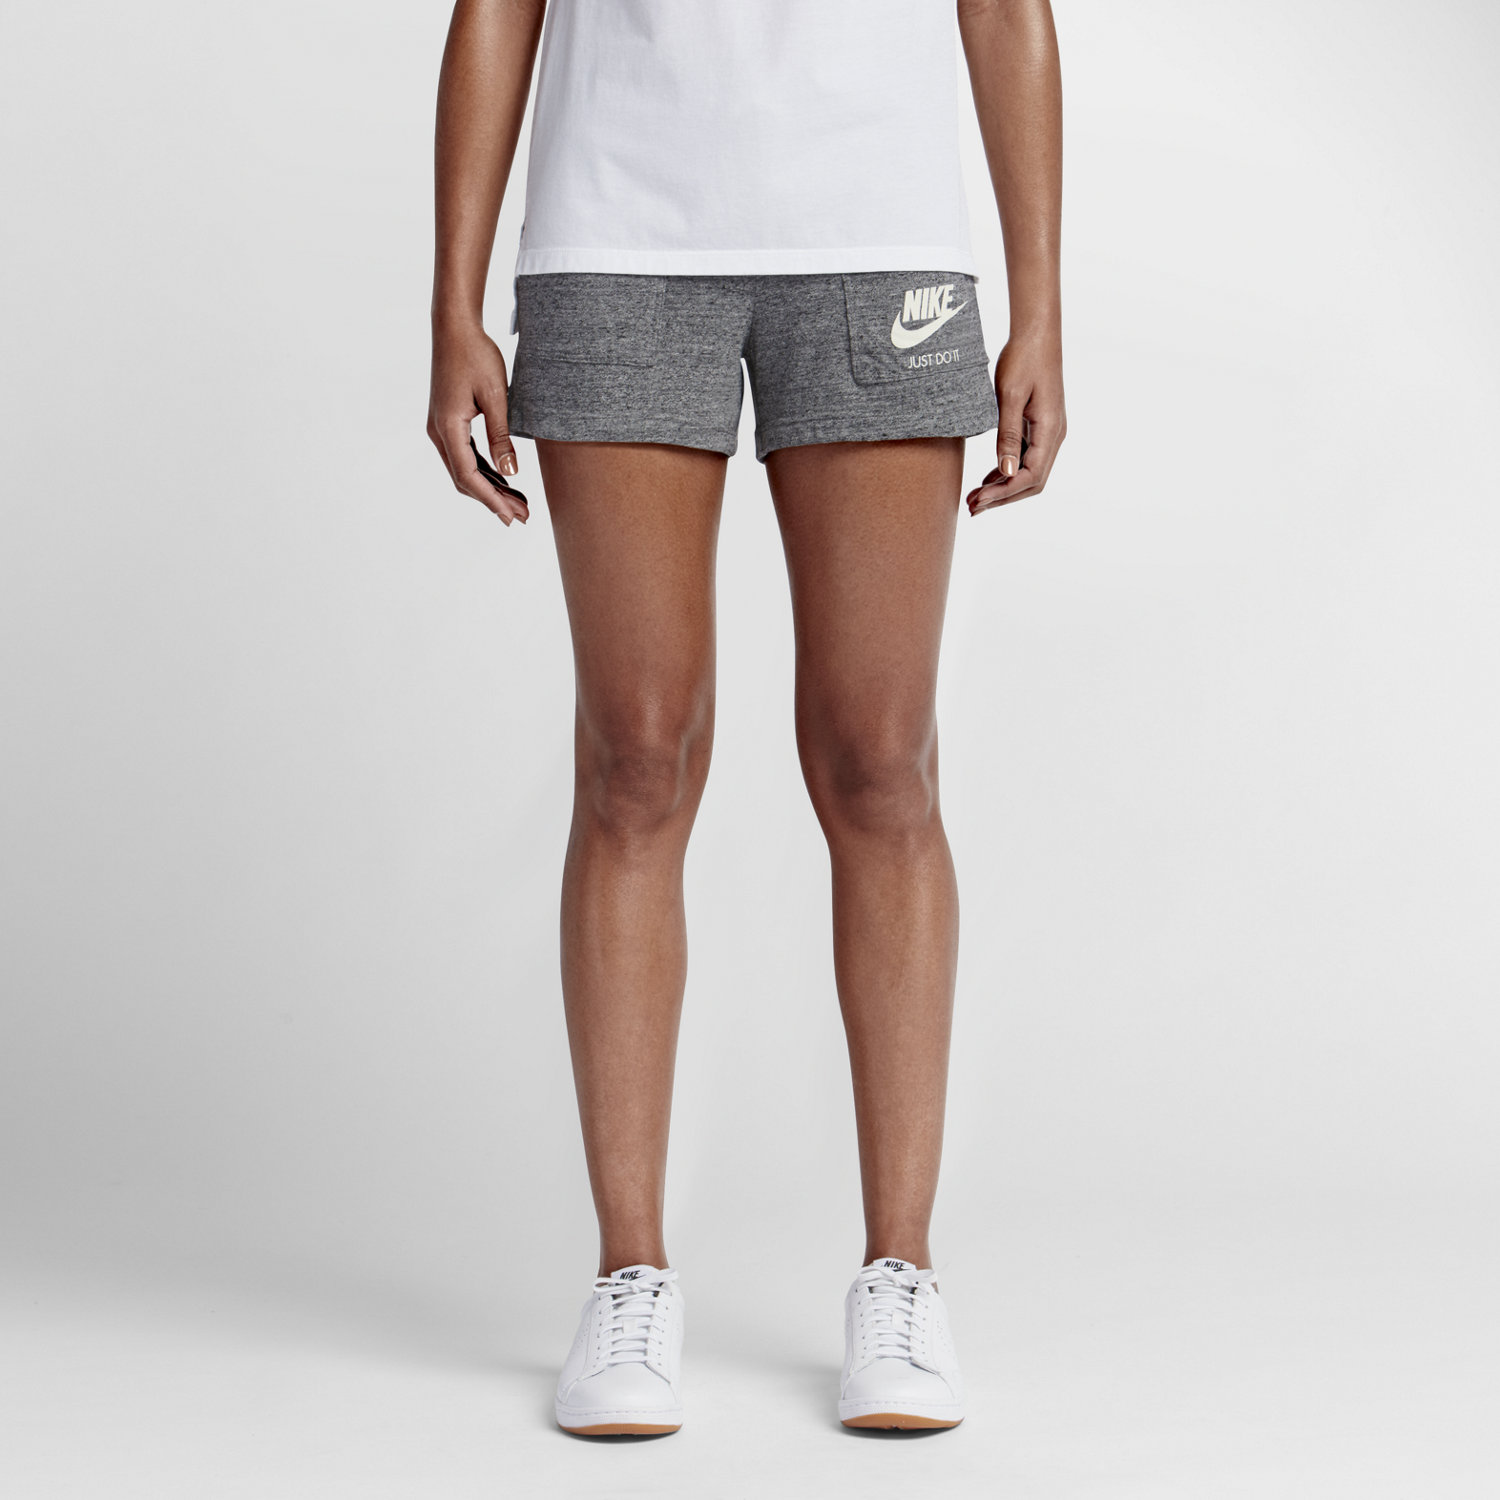 Nike womens running shorts with liner - Nike Womens Running Shorts With Liner 57